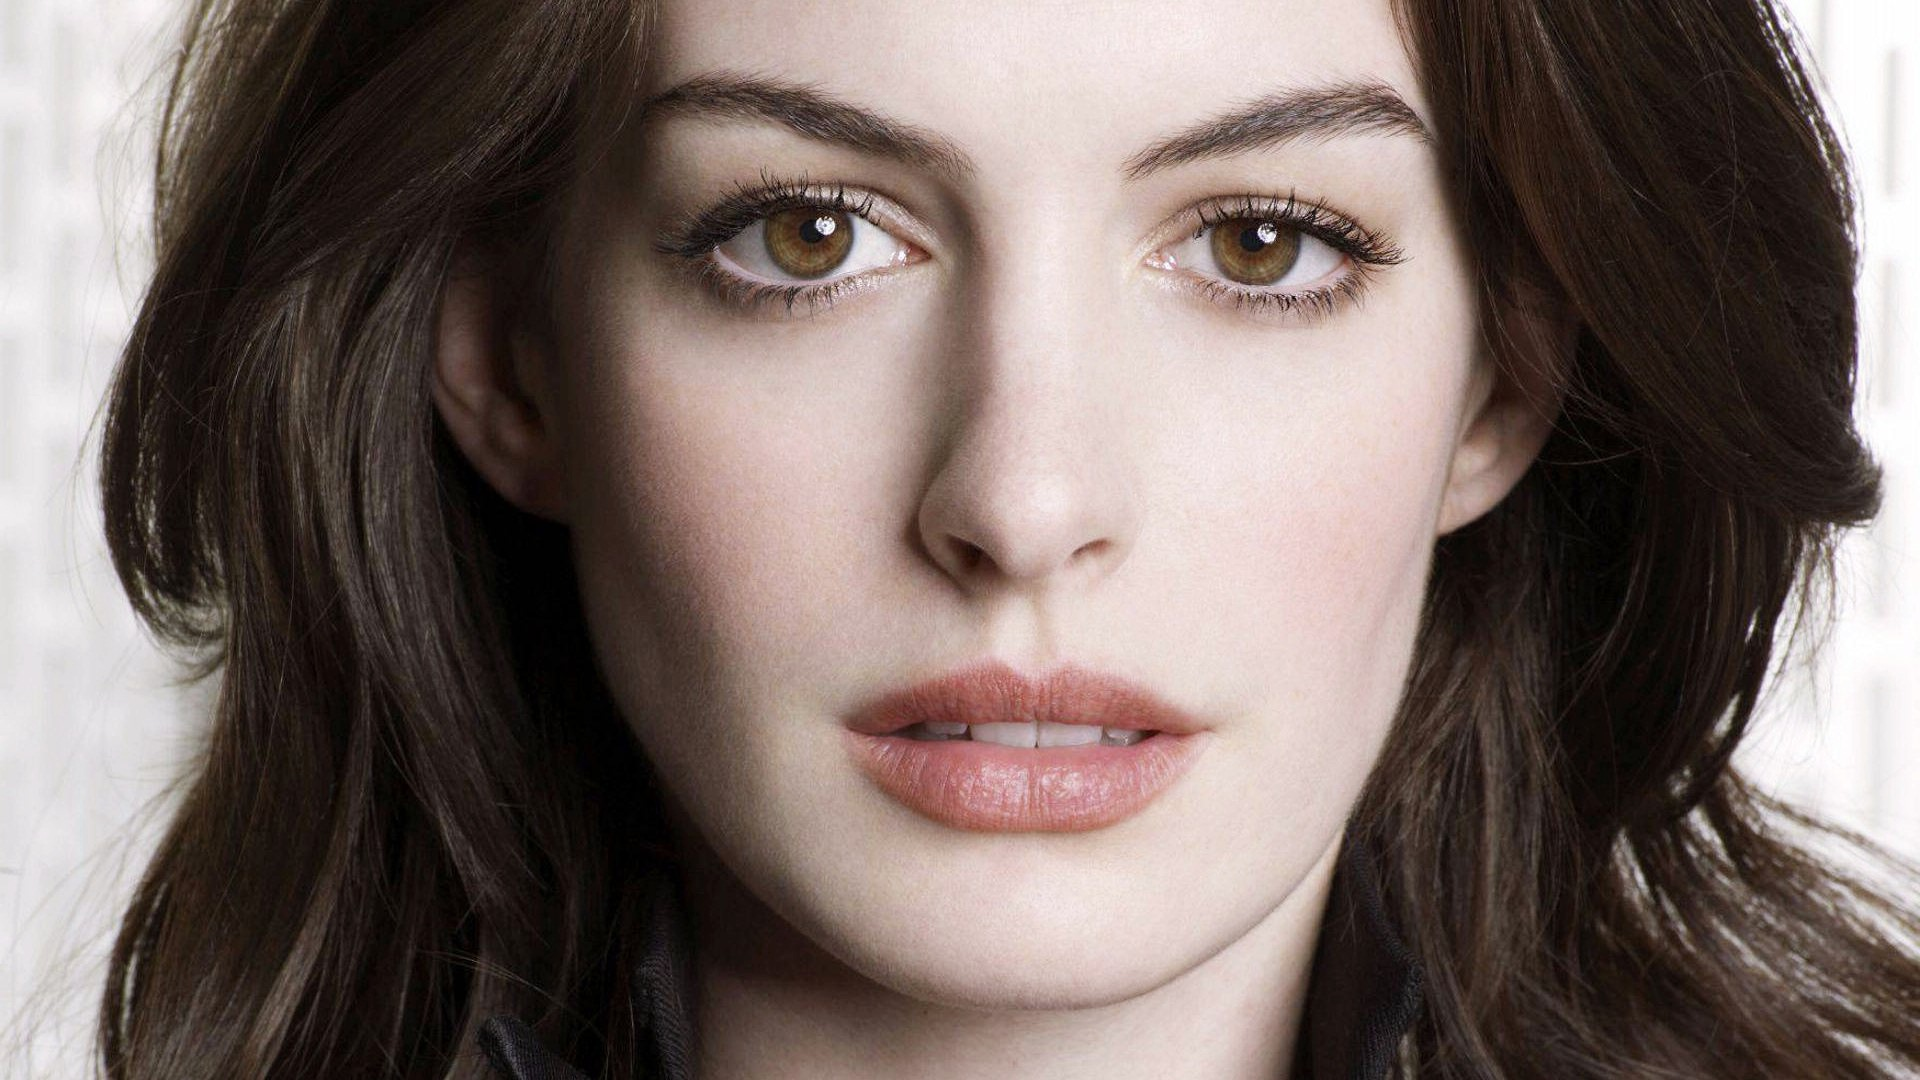 anne hathaway 2015 wallpapers - photo #37